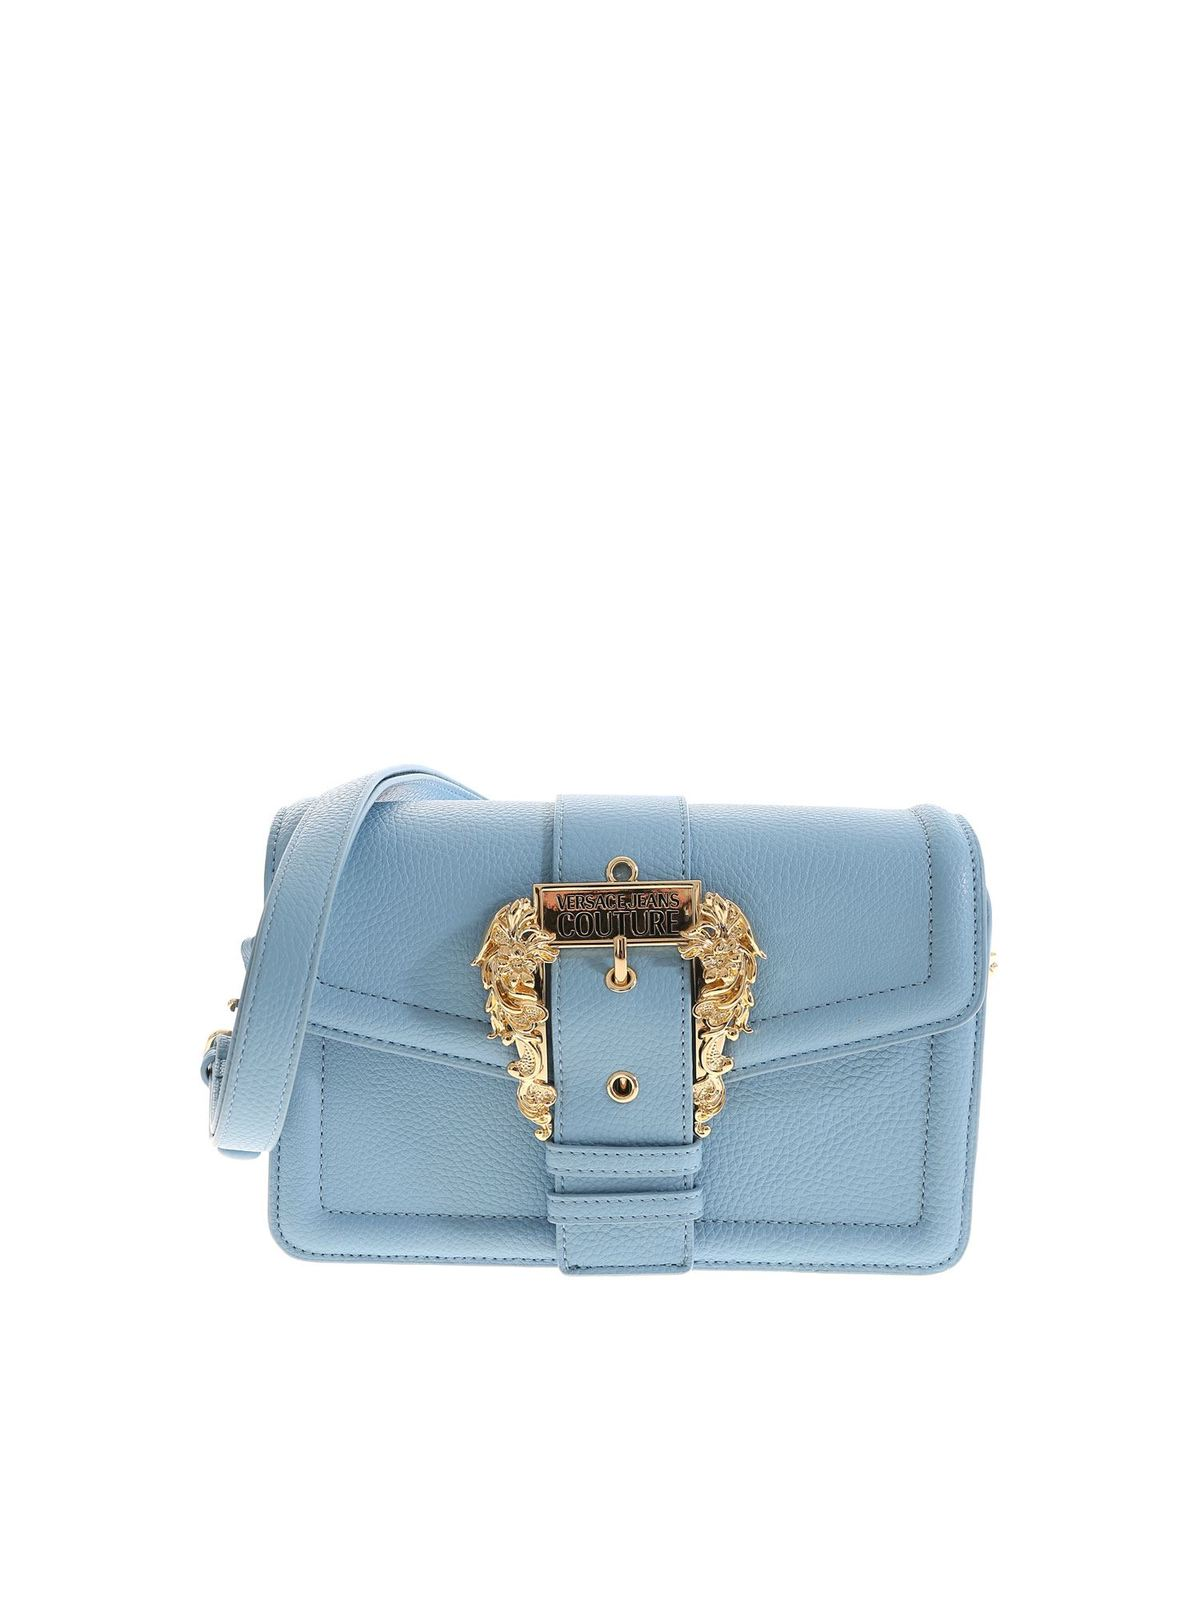 Versace Leathers BAROQUE BUCKLE BAG IN LIGHT BLUE